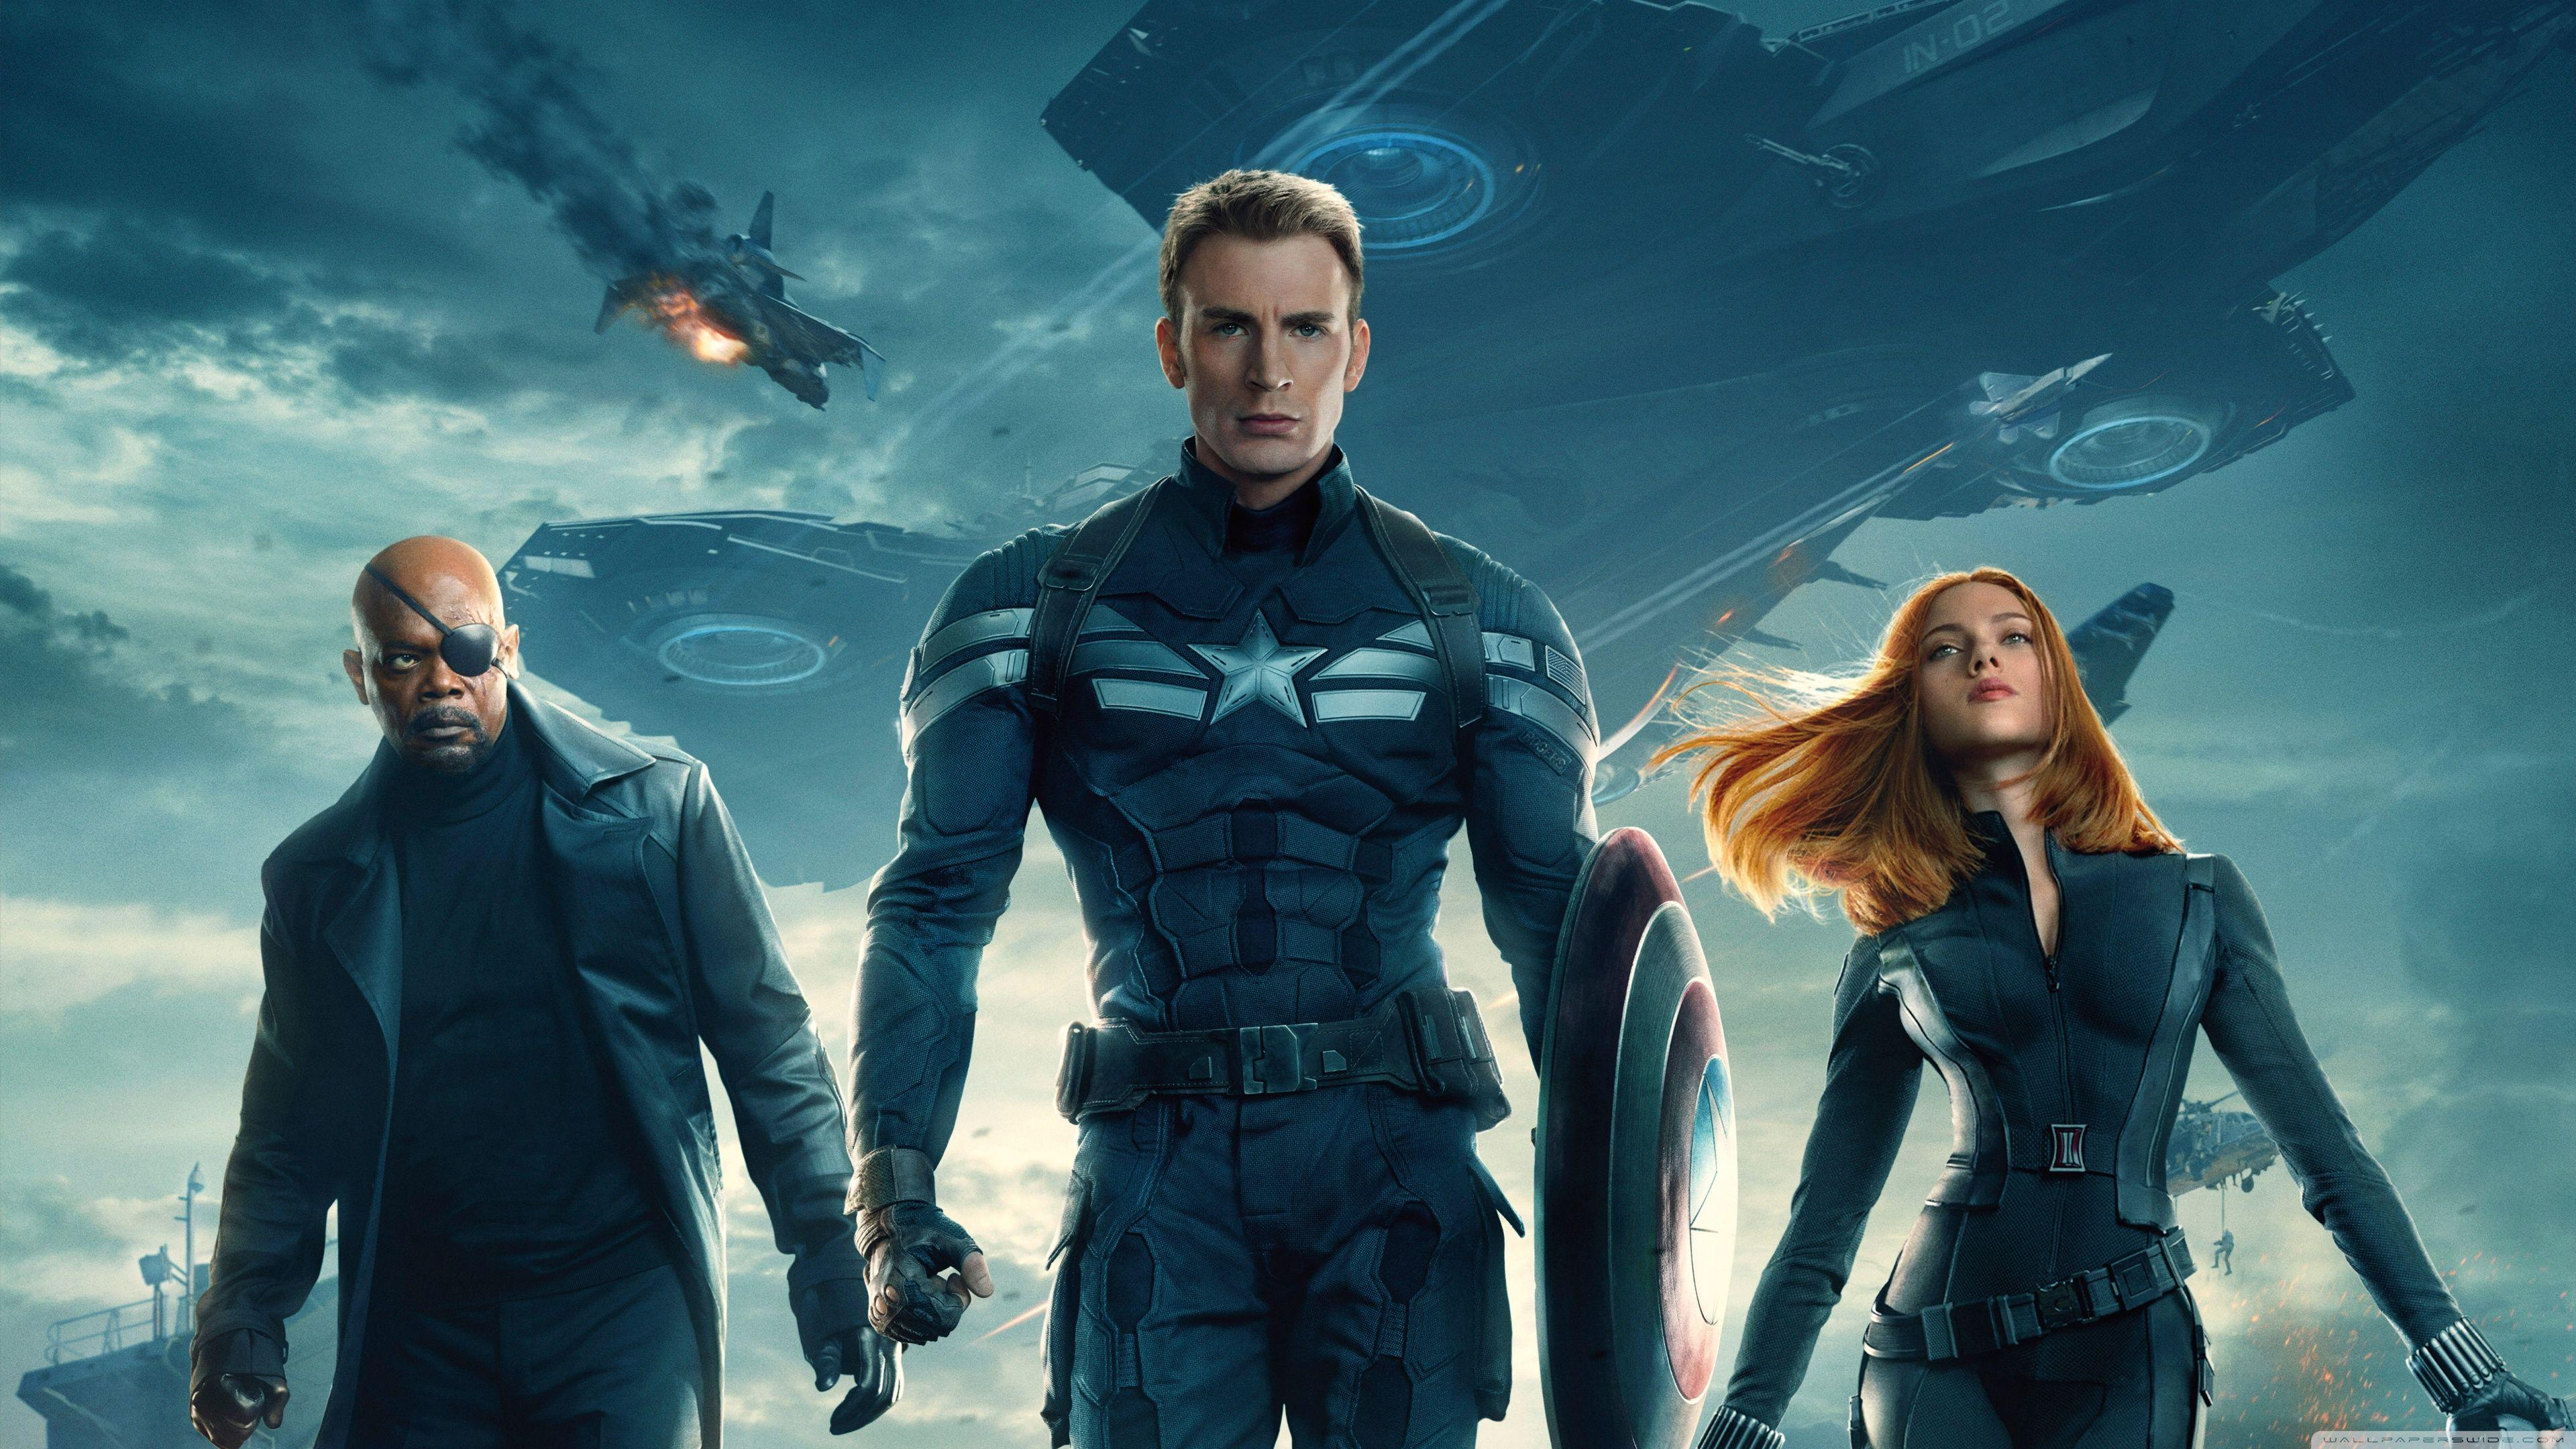 Captain America The Winter Soldier 2014 Movie HD desktop wallpapers